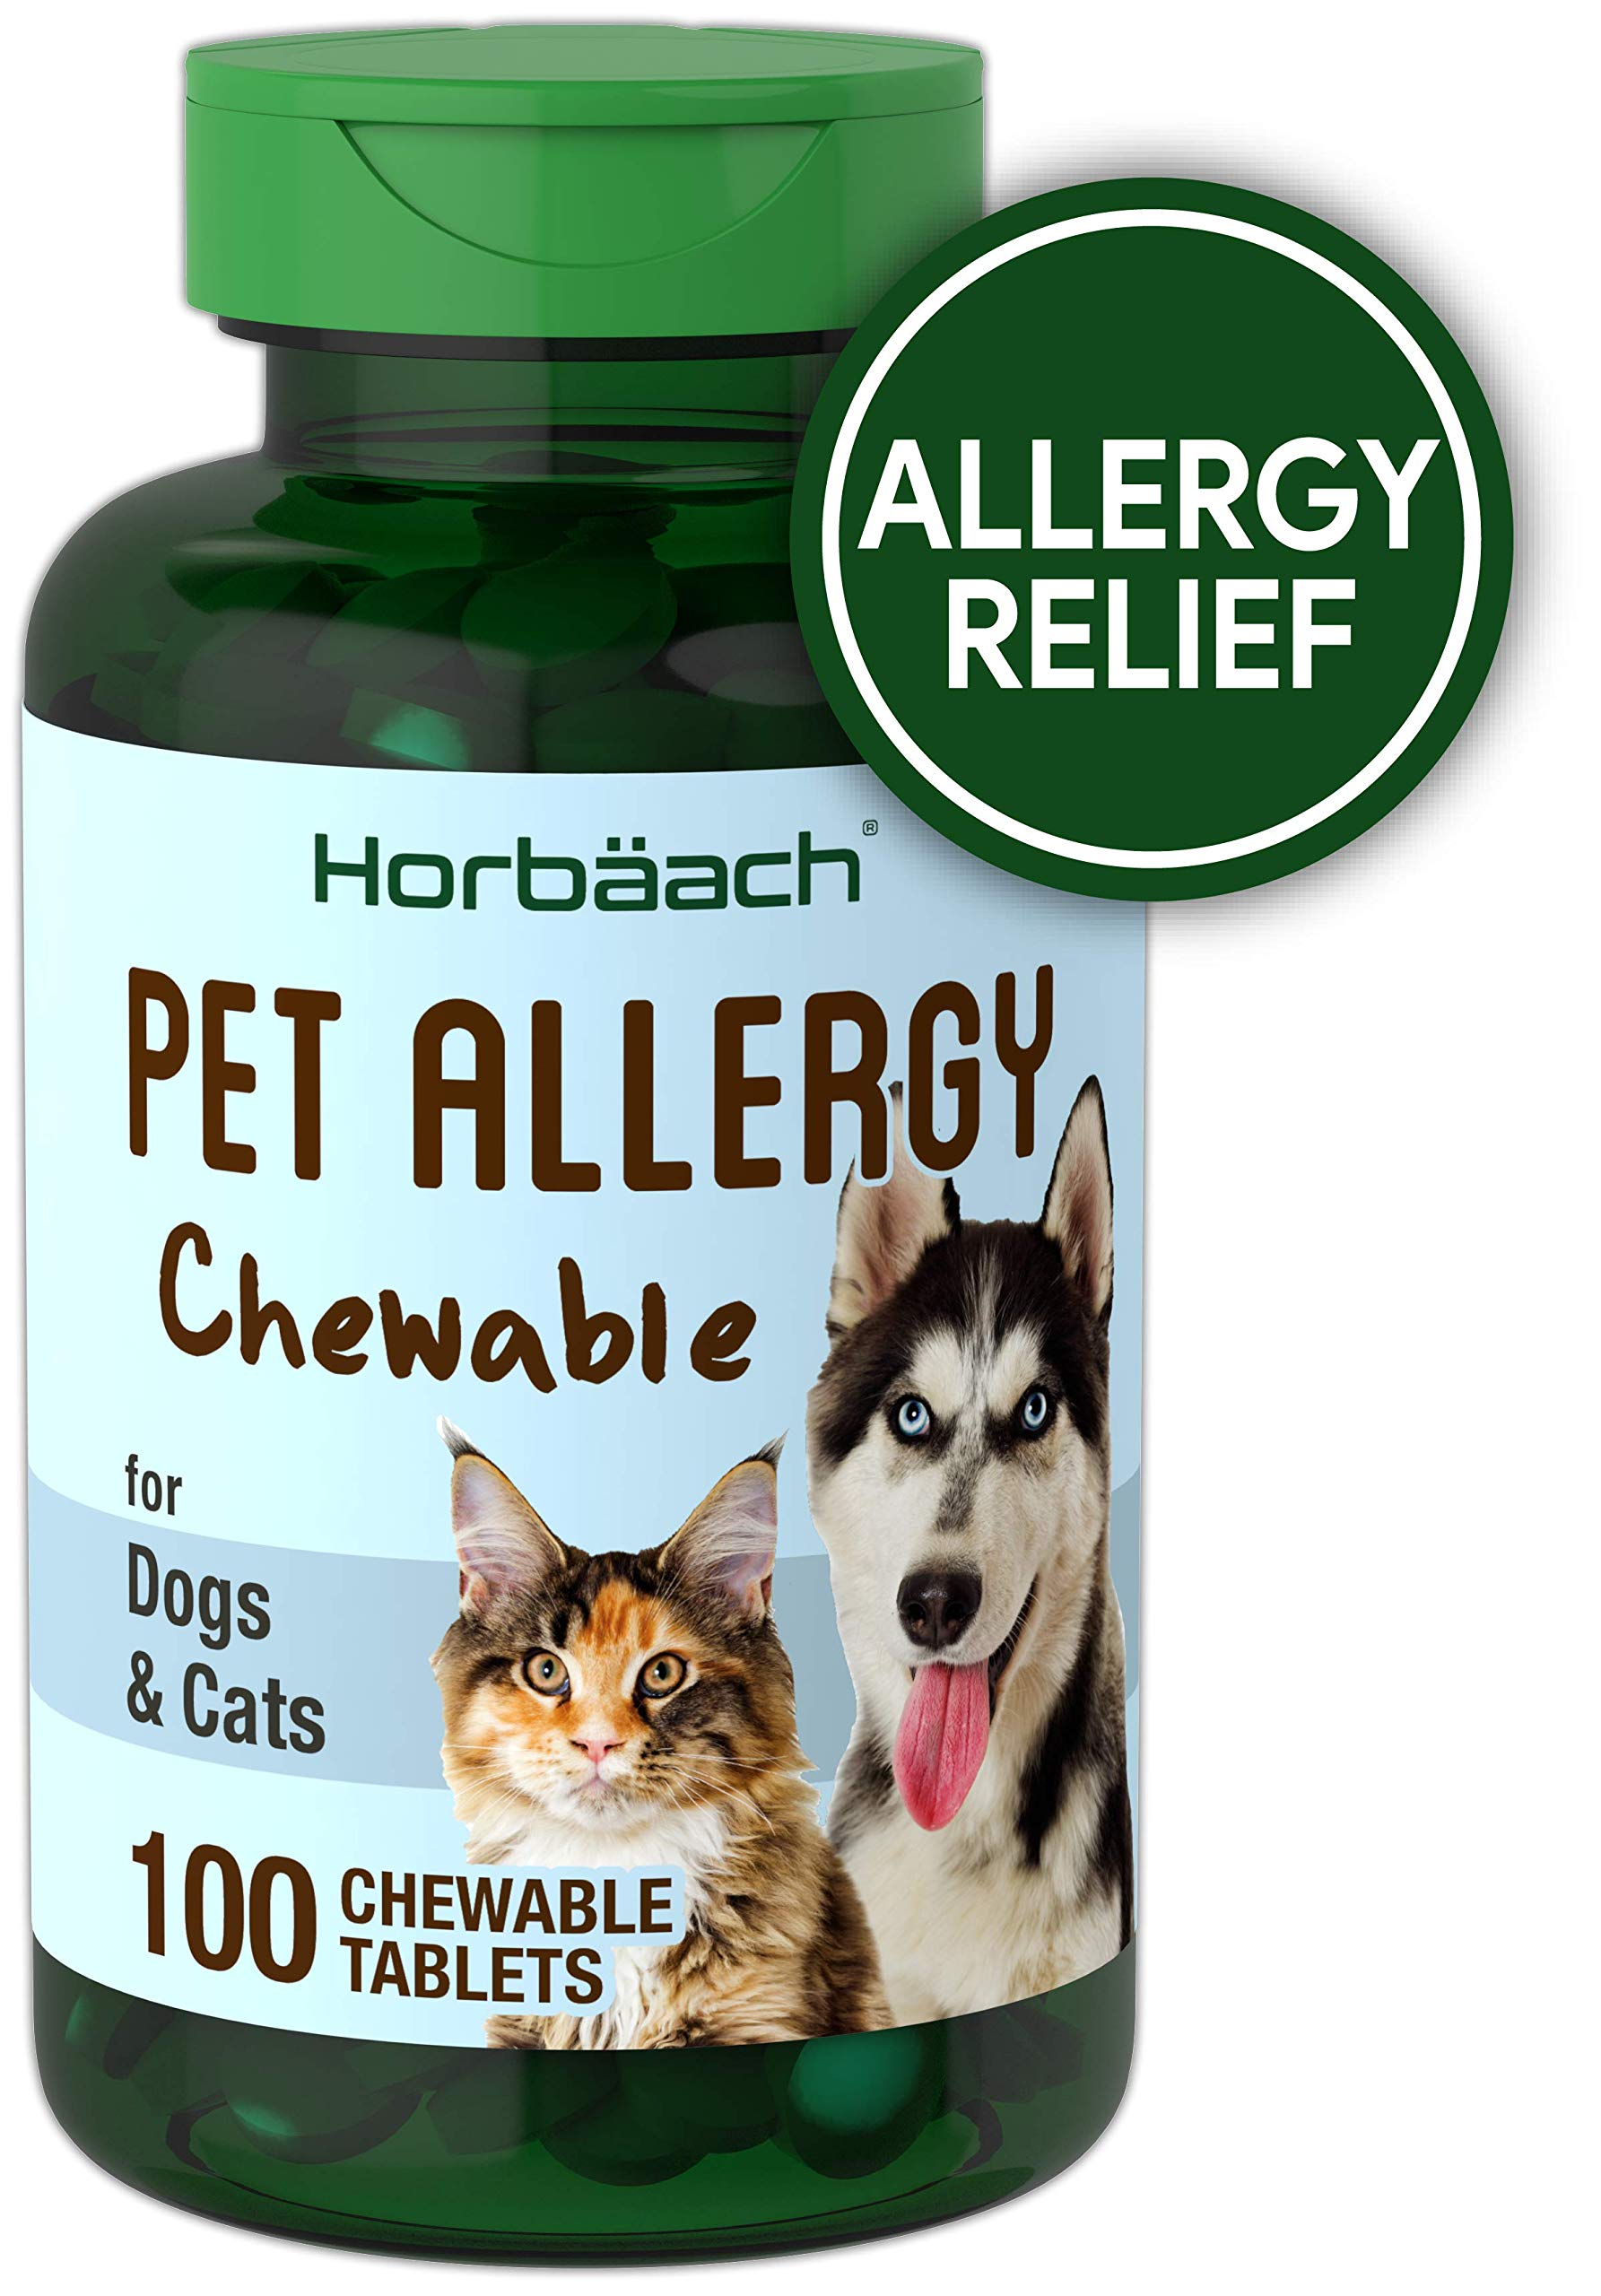 Horbaach Pet Allergy Max Relief 100 Chewables Tablets | Seasonal Alleries, Immune Support and Digestive Probiotics | Non-GMO and Gluten Free | Natural Beef Flavor Medicine for Cats & Dogs by Horbäach